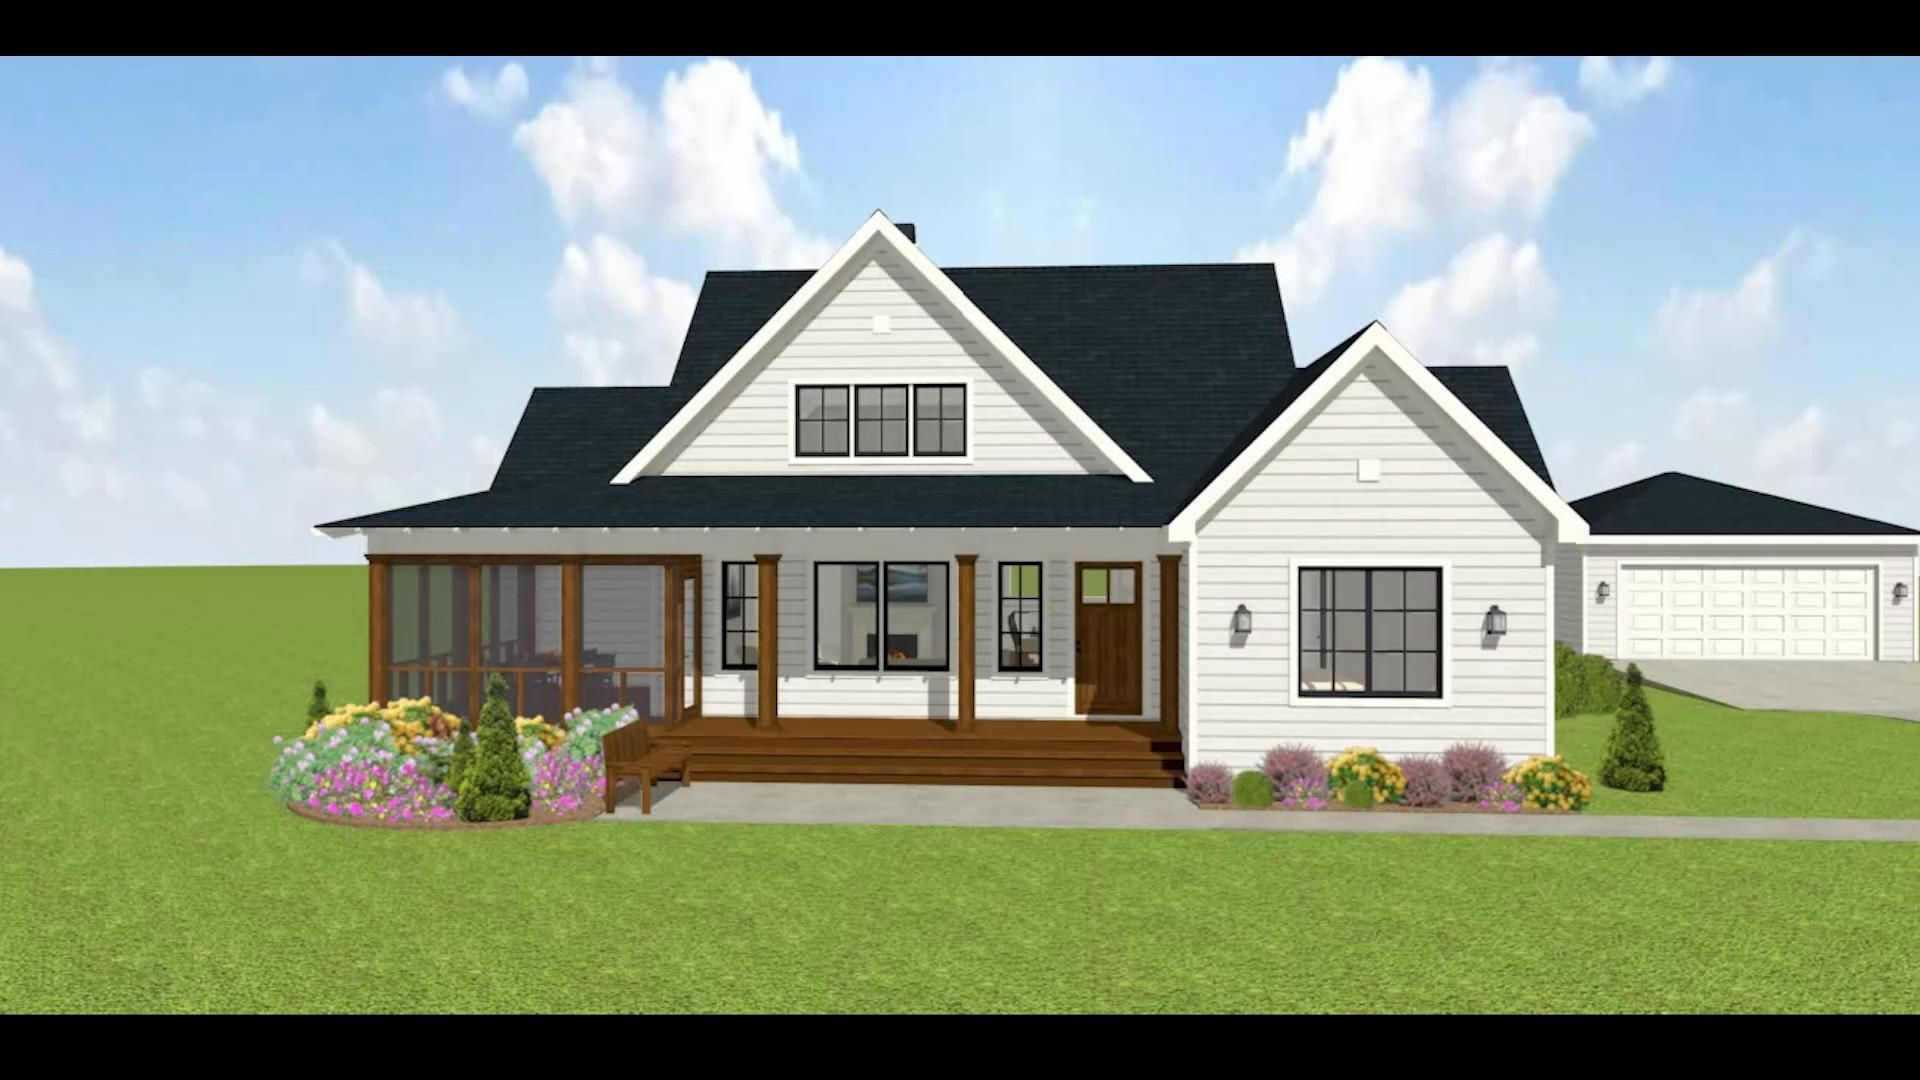 3 Bed Modern Farmhouse Home Plan 28923JJ - 3D Virt